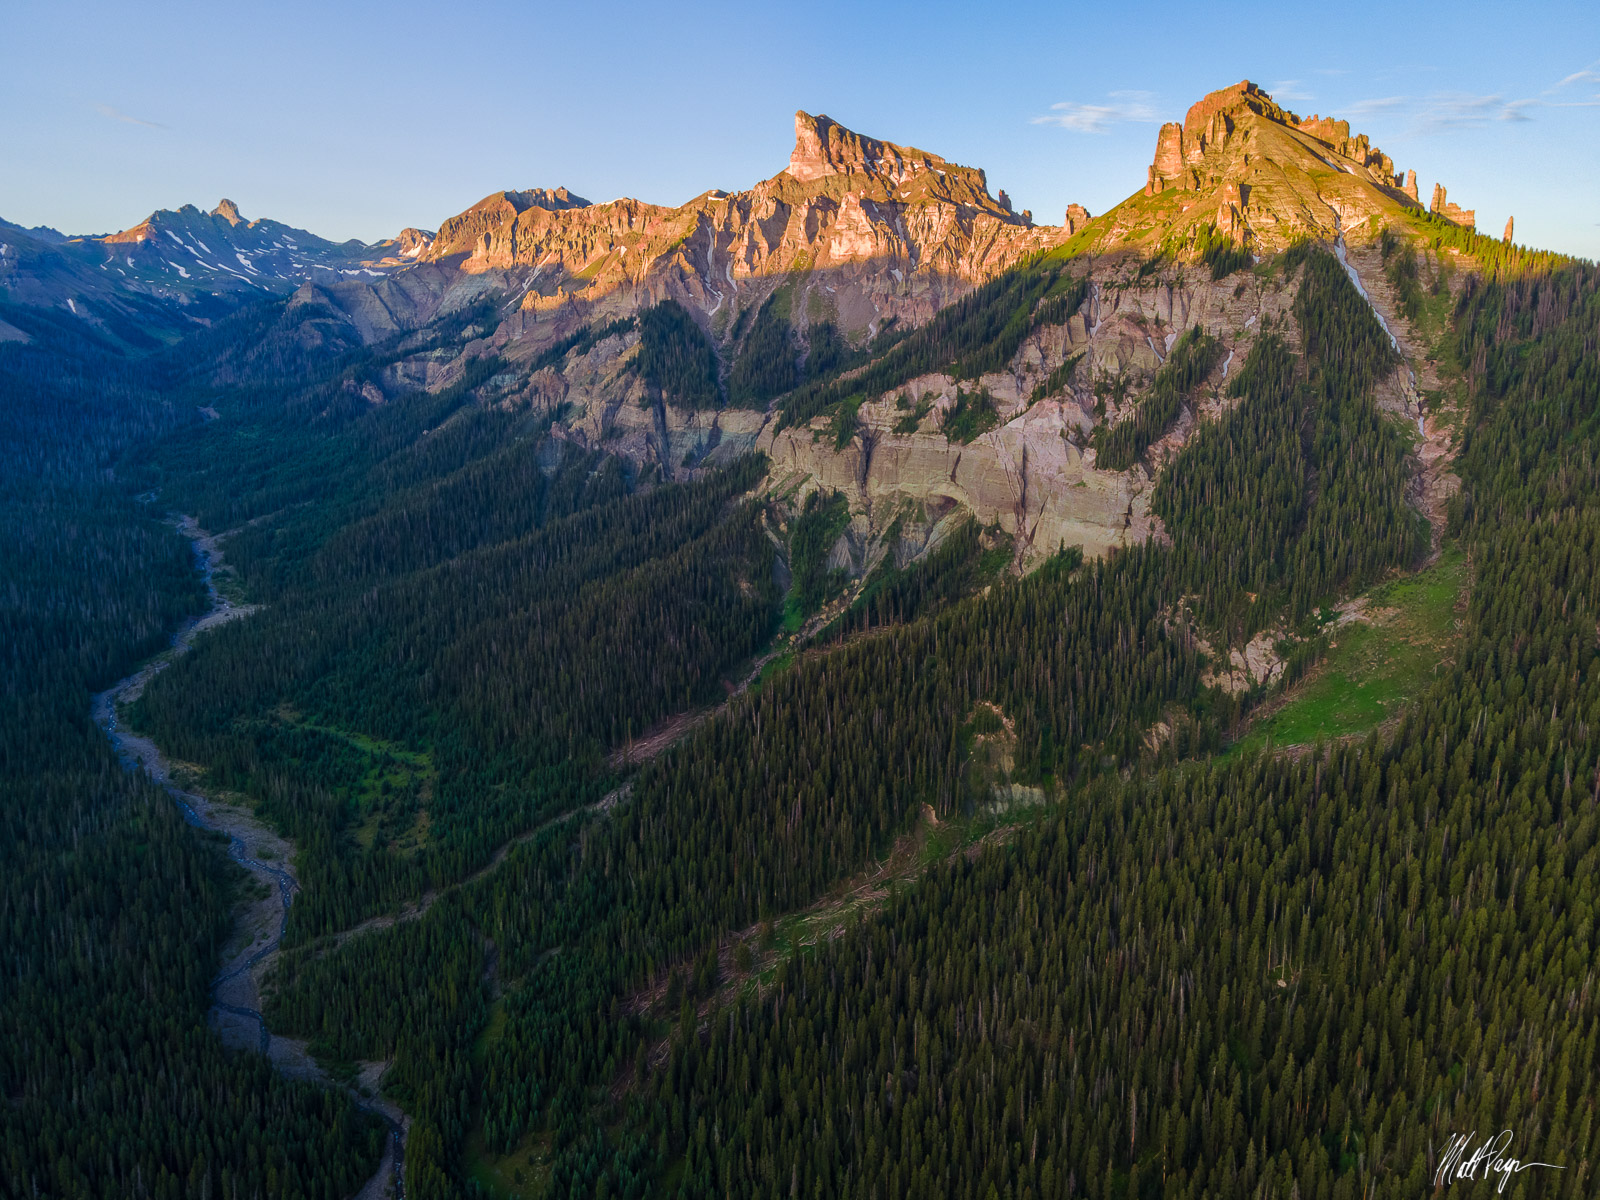 Capturing mountain landscapes with a camera is a huge passion of mine. No mountains make me more excited to photograph than the...